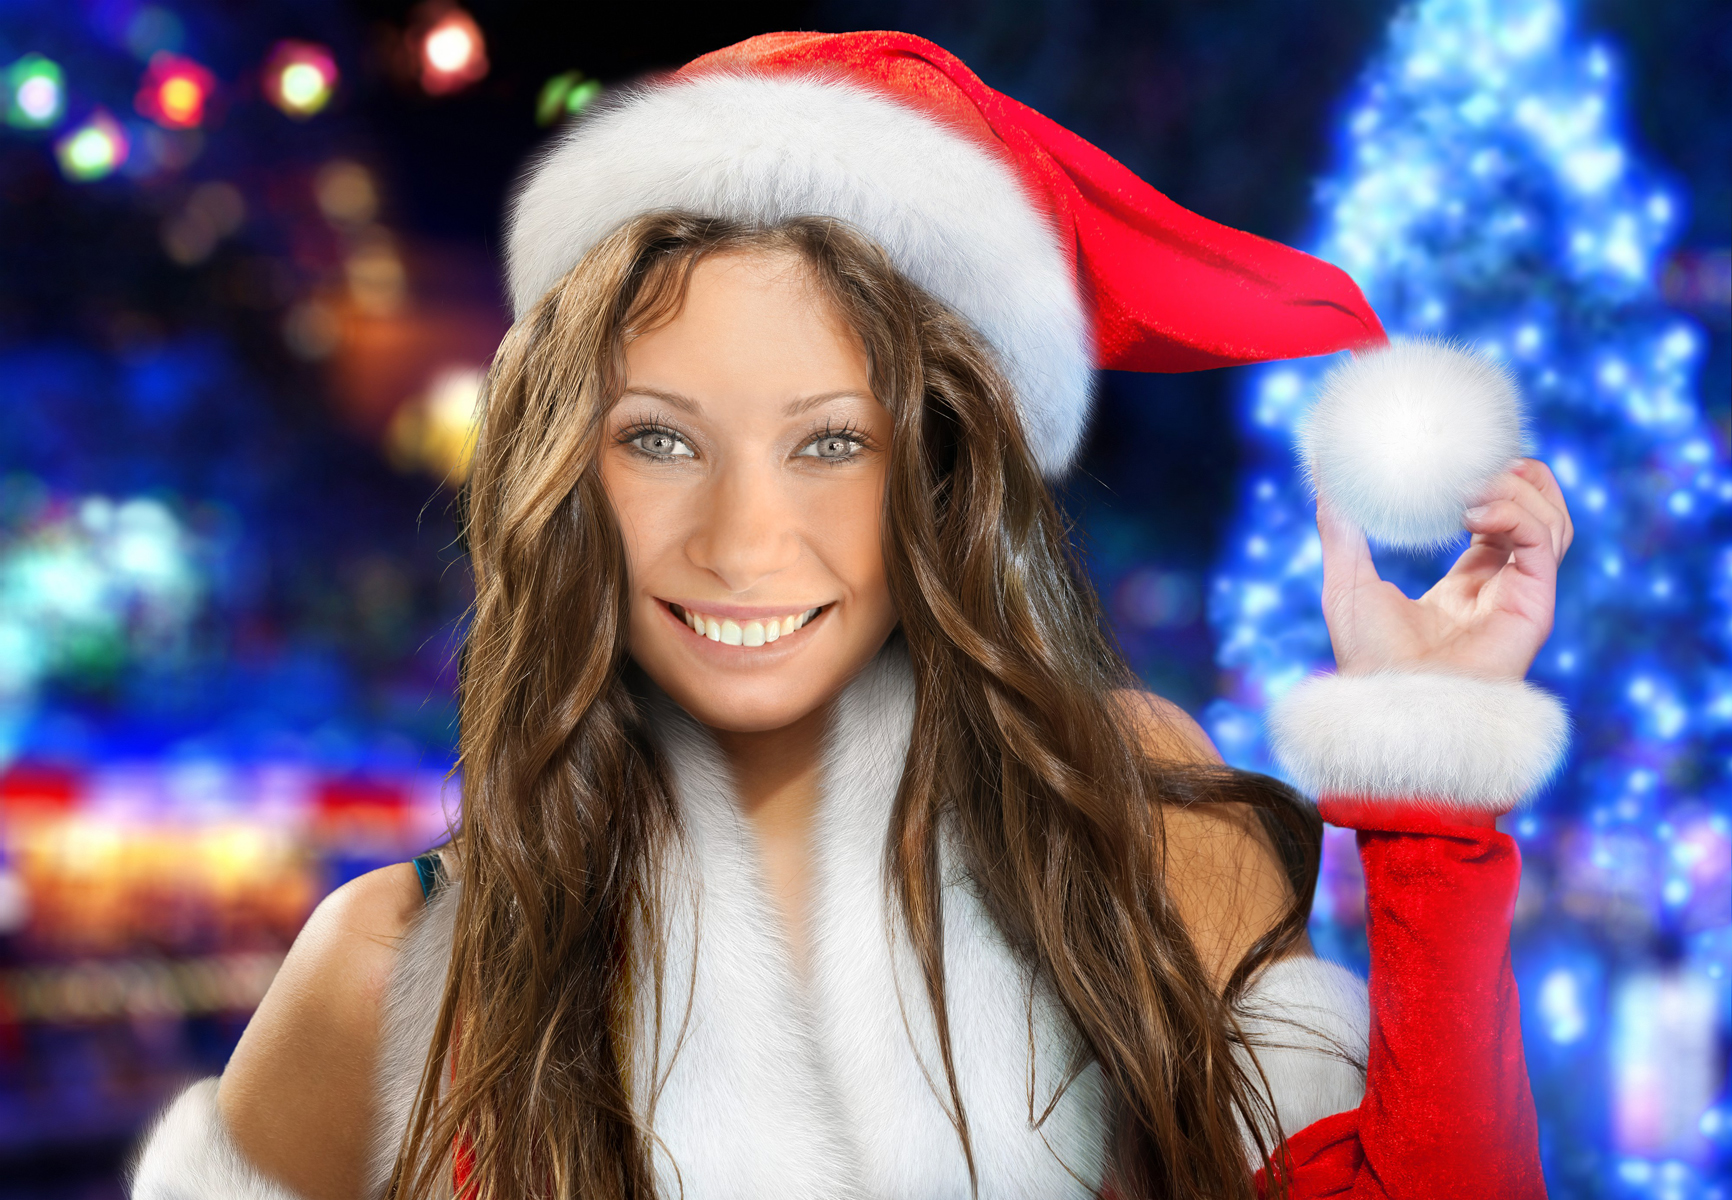 Demonstration of Christmas face-in-hole effect with Santa girl